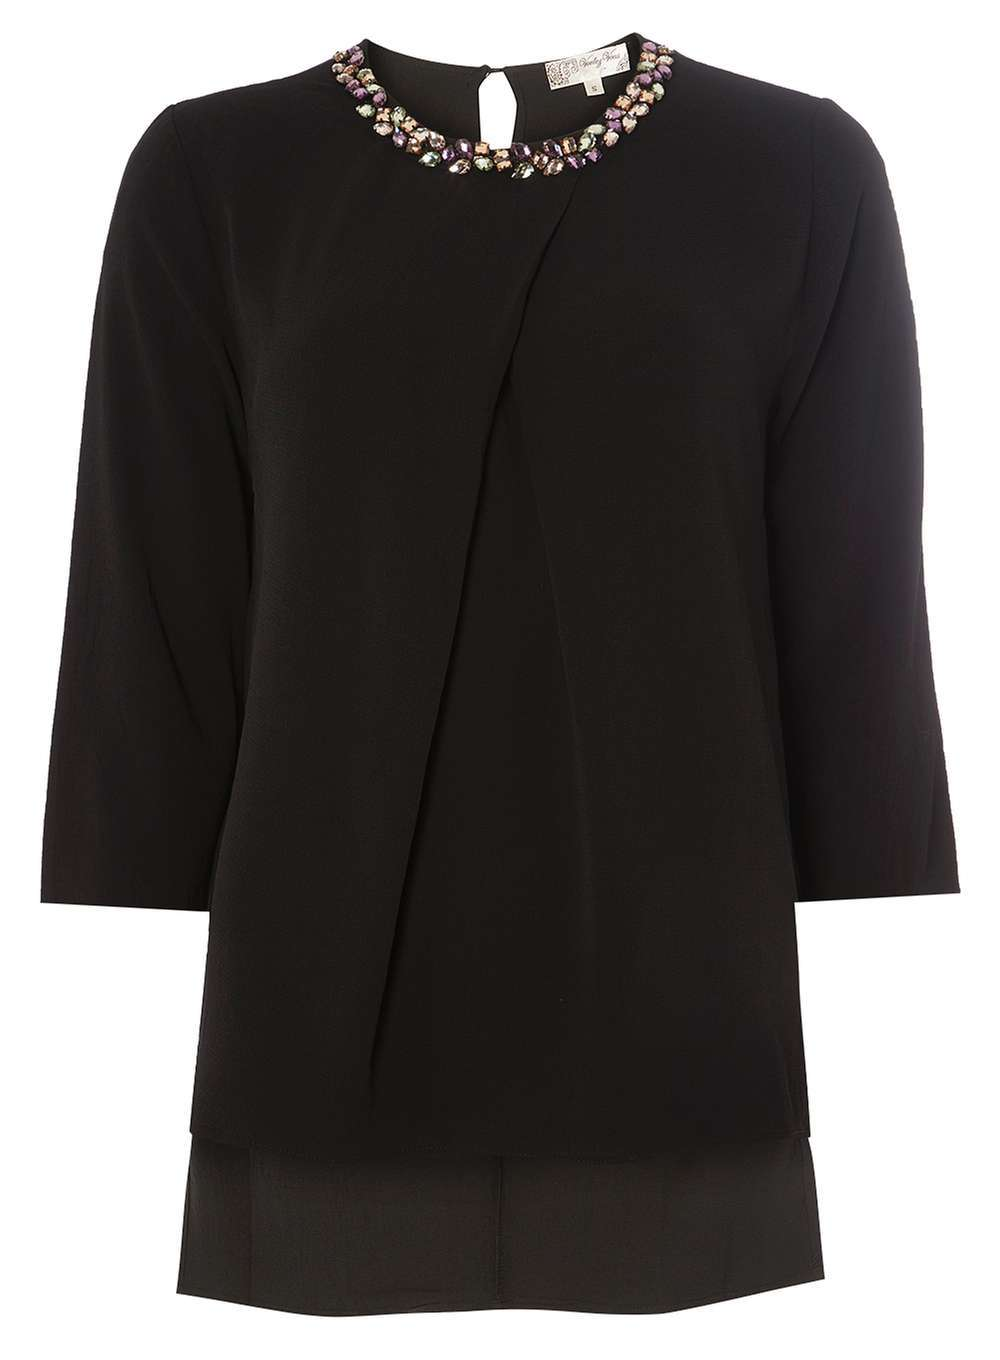 Womens **Voulez Vous Black Pleat Neck Blouse Black - neckline: round neck; pattern: plain; length: below the bottom; style: blouse; predominant colour: black; occasions: evening; fibres: polyester/polyamide - 100%; fit: body skimming; back detail: keyhole/peephole detail at back; sleeve length: 3/4 length; sleeve style: standard; pattern type: fabric; texture group: jersey - stretchy/drapey; embellishment: sequins; season: a/w 2016; wardrobe: event